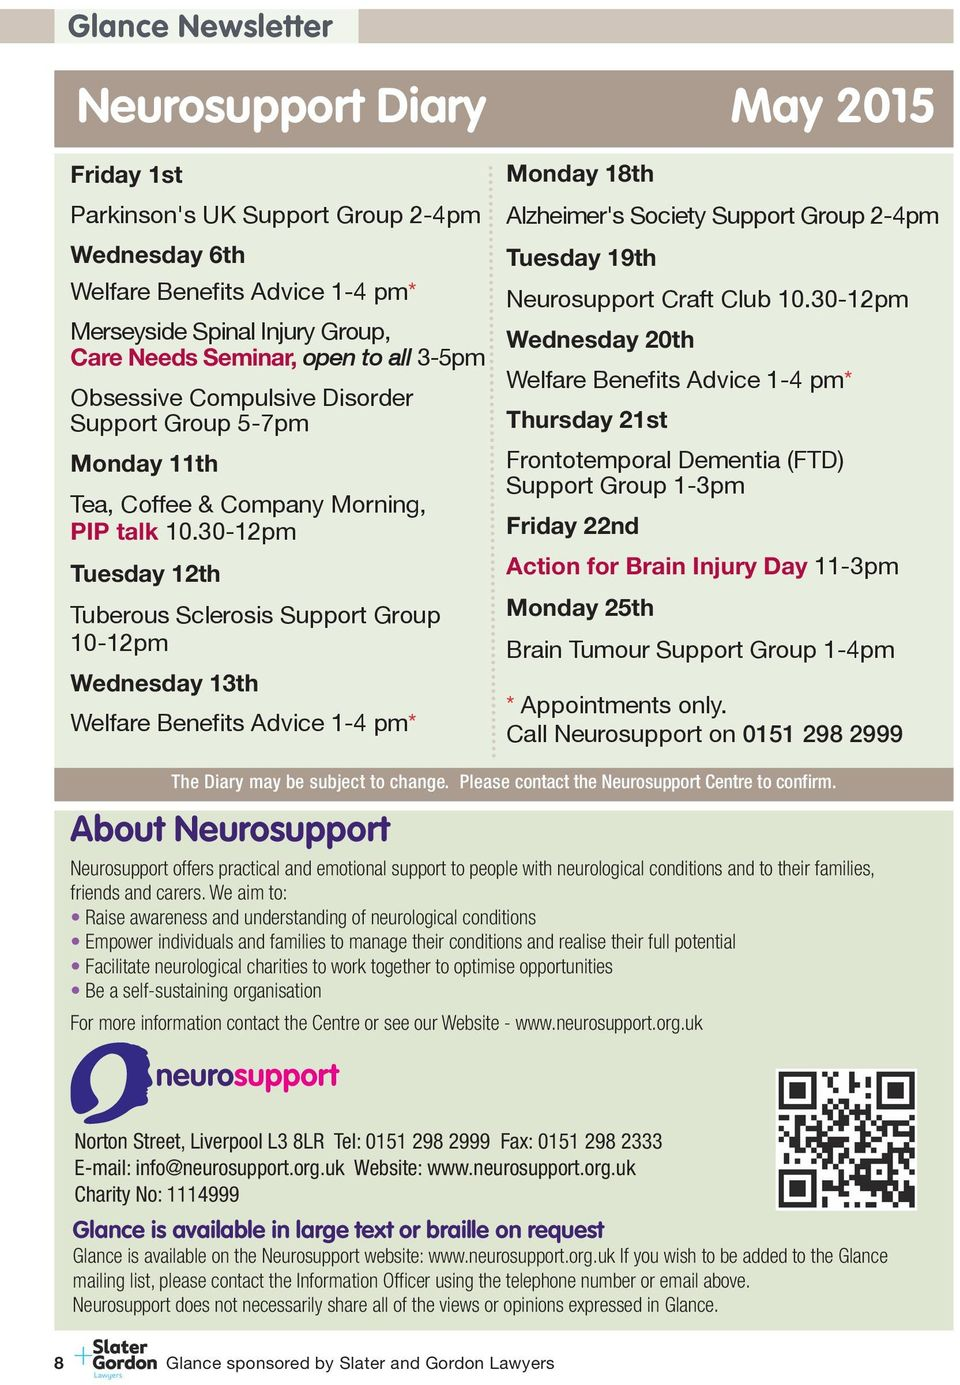 30-12pm Tuesday 12th Tuberous Sclerosis Support Group 10-12pm Wednesday 13th Welfare Benefits Advice 1-4 pm* Monday 18th Alzheimer's Society Support Group 2-4pm Tuesday 19th Neurosupport Craft Club